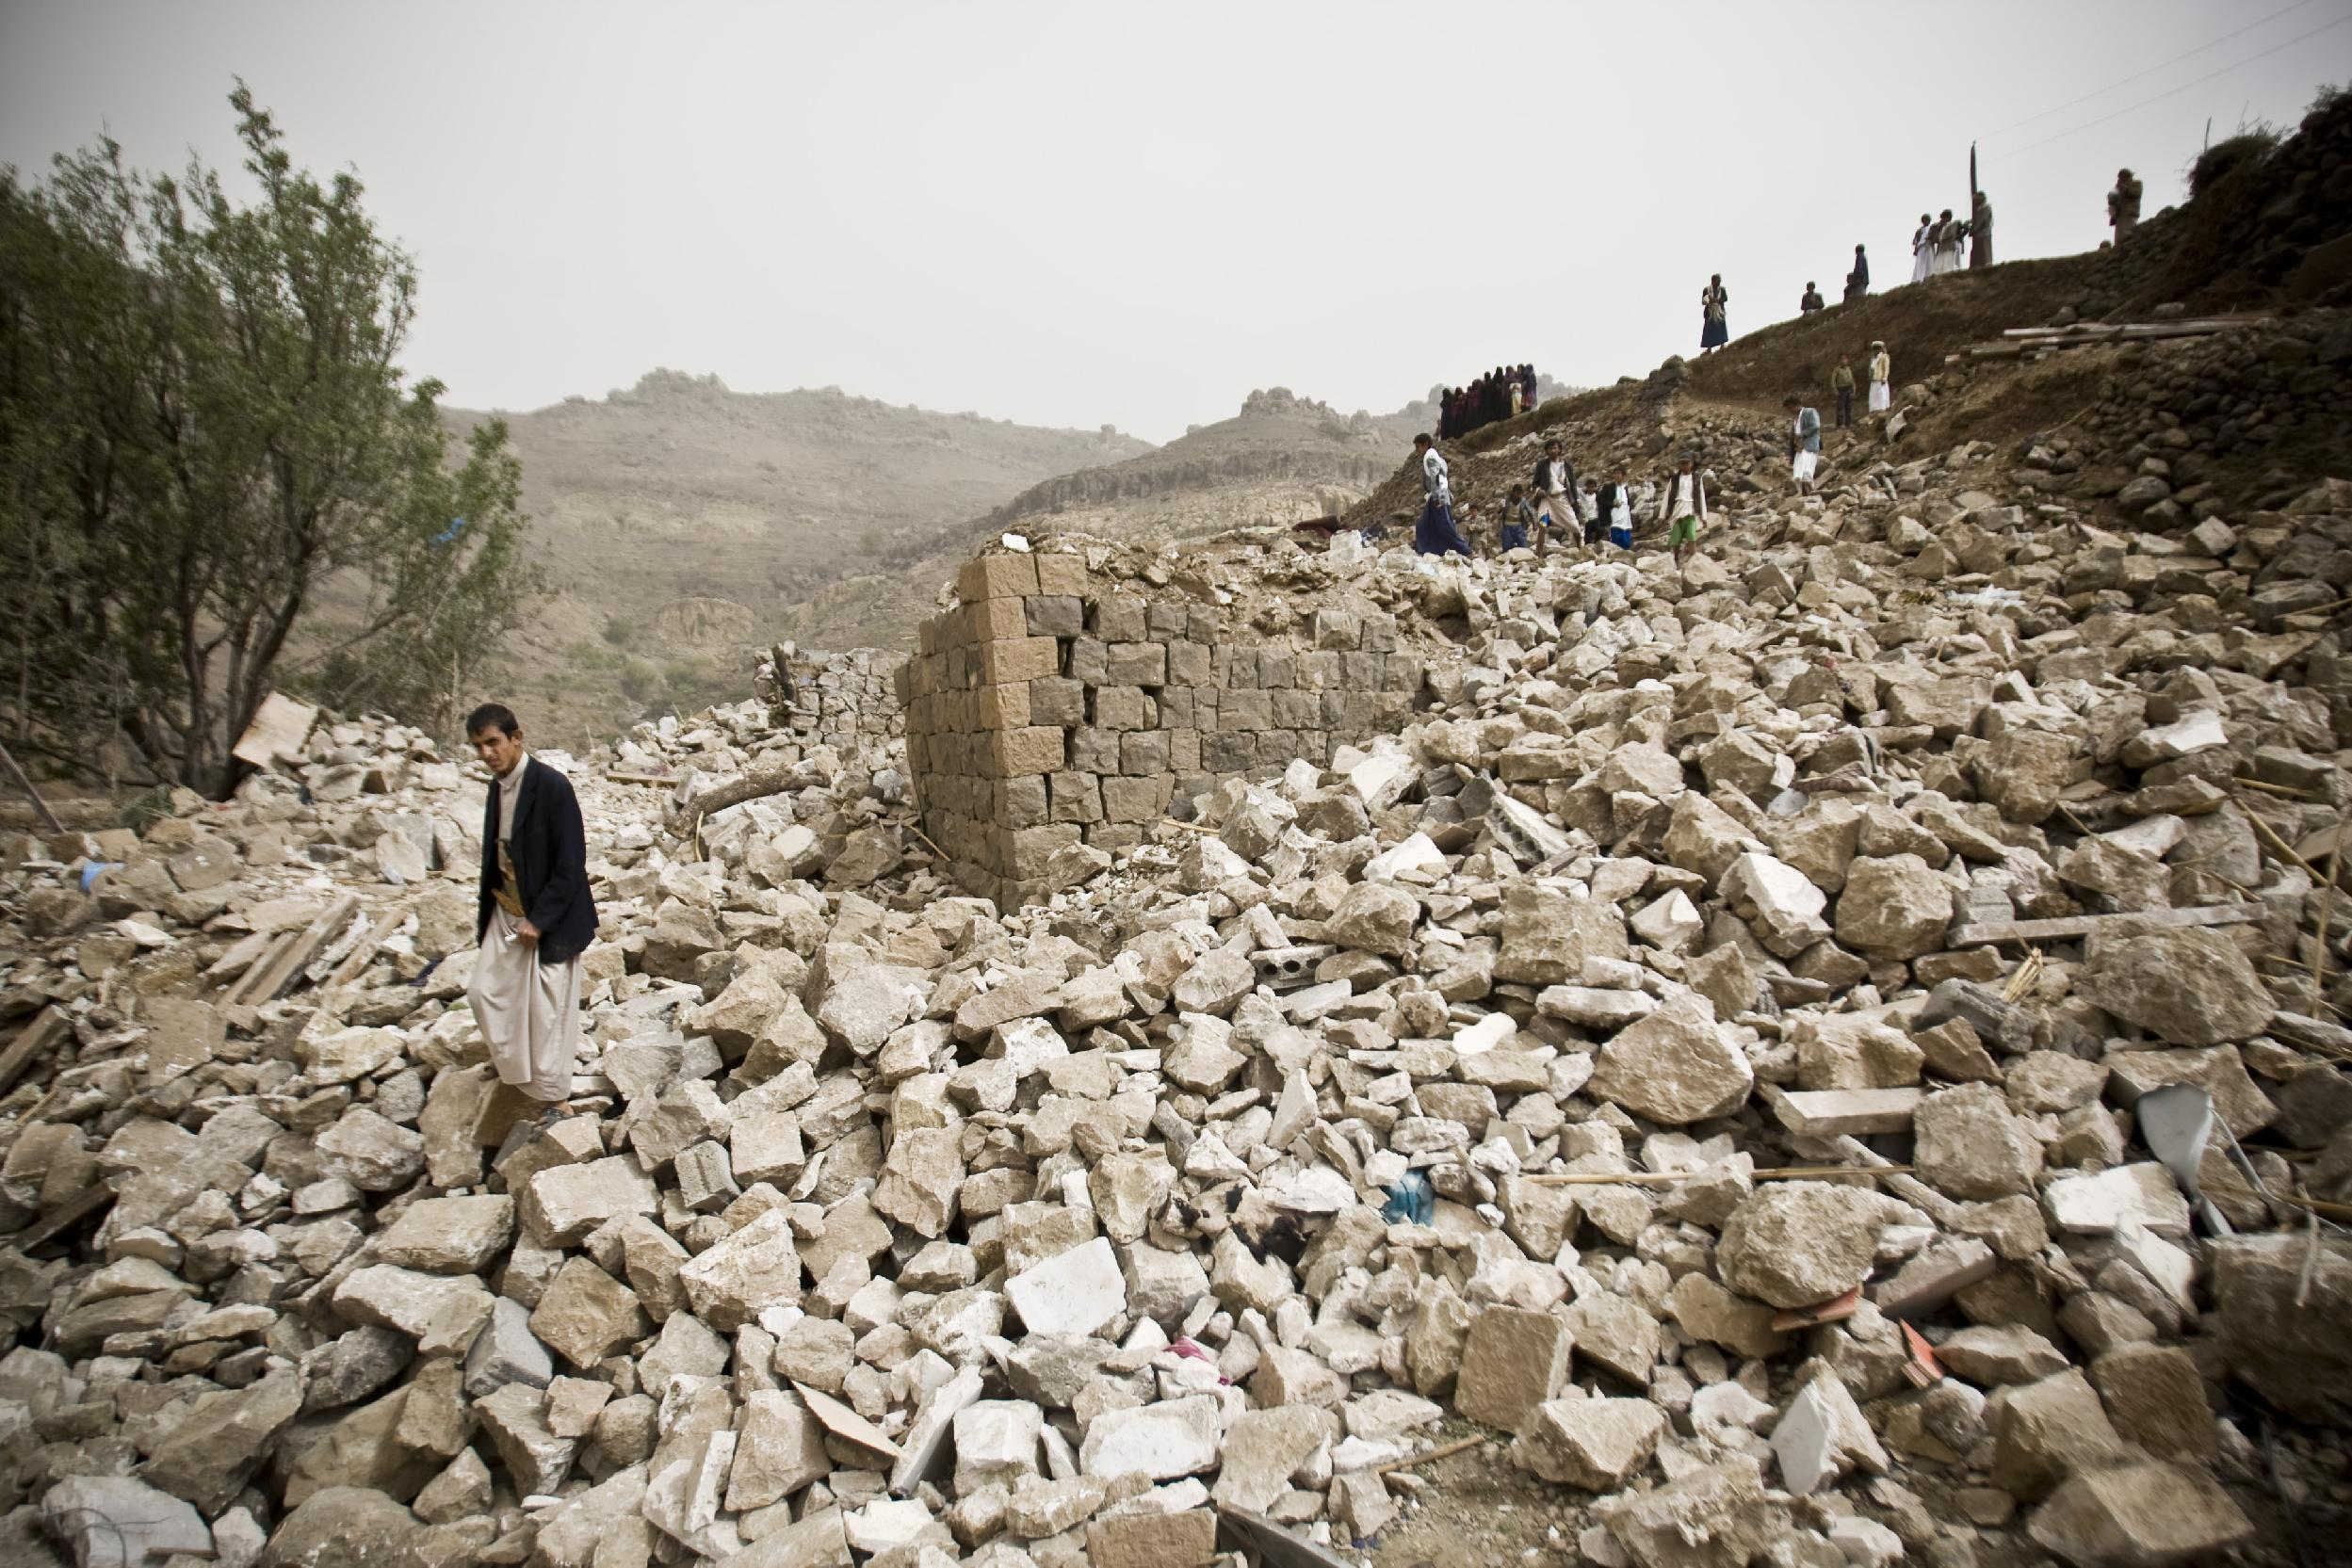 UN: High civilian toll in Yemen conflict; at least 550 dead